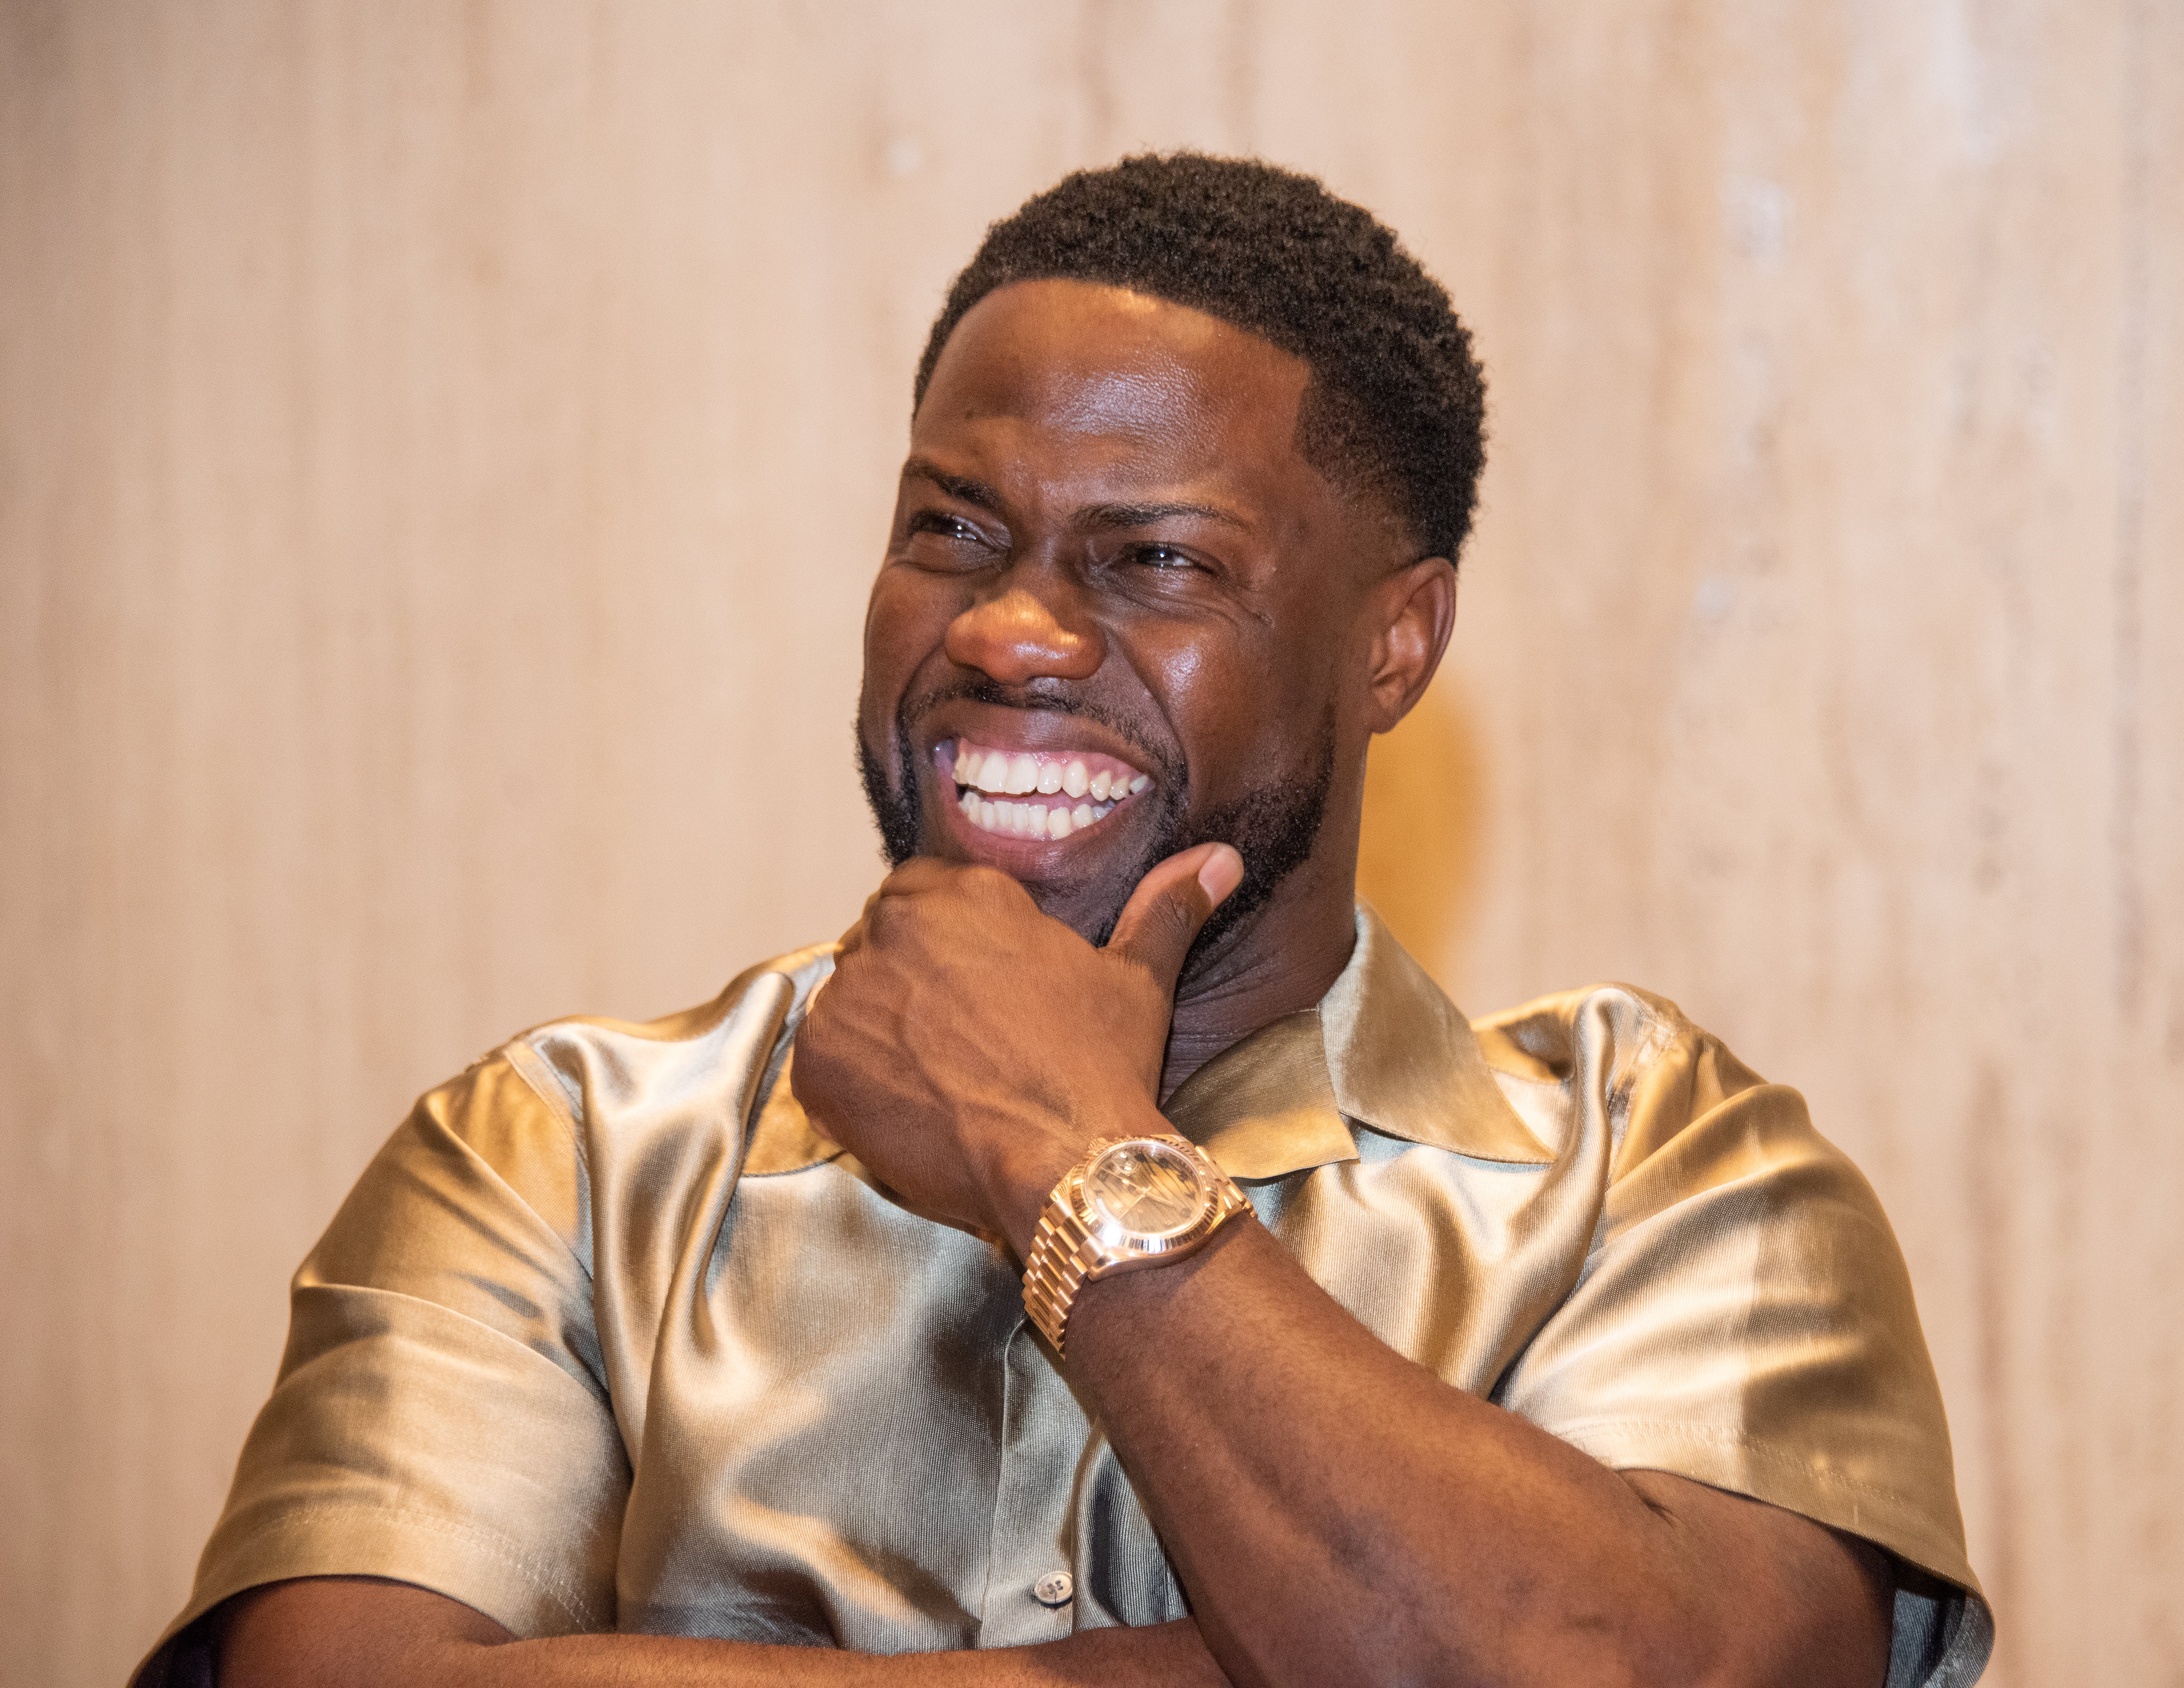 """Kevin Hart at the """"Jumanji: Next Level"""" press conference in Cabo San Lucas on November 23, 2019. 